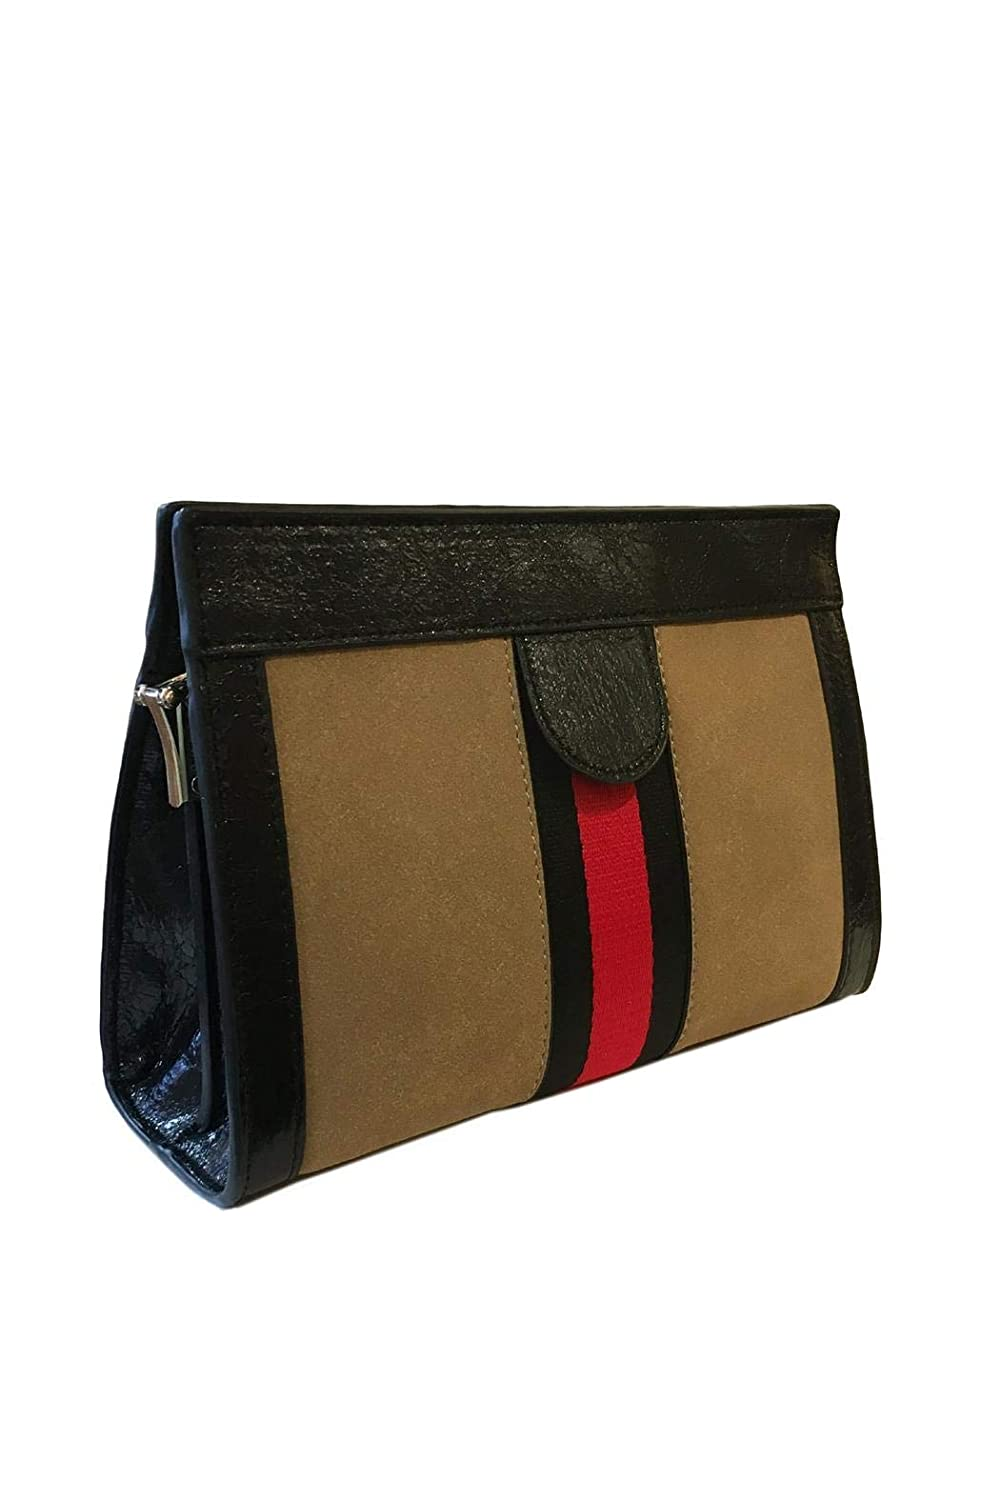 Inzi Striped Cross Body Leather Suede Textured Bag Faux